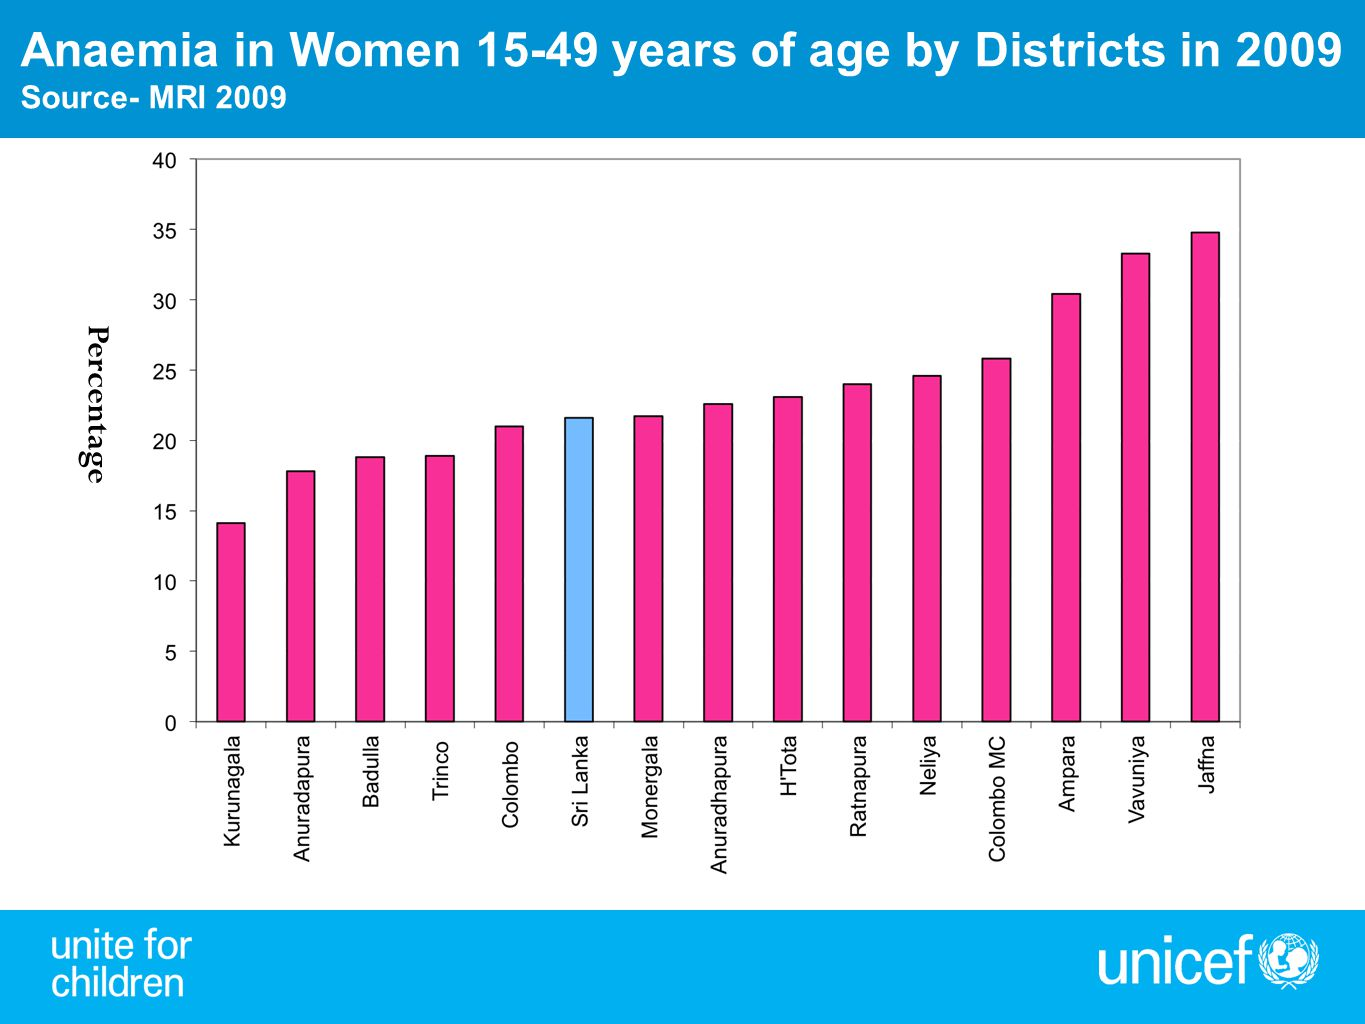 Anaemia in Women 15-49 years of age by Districts in 2009